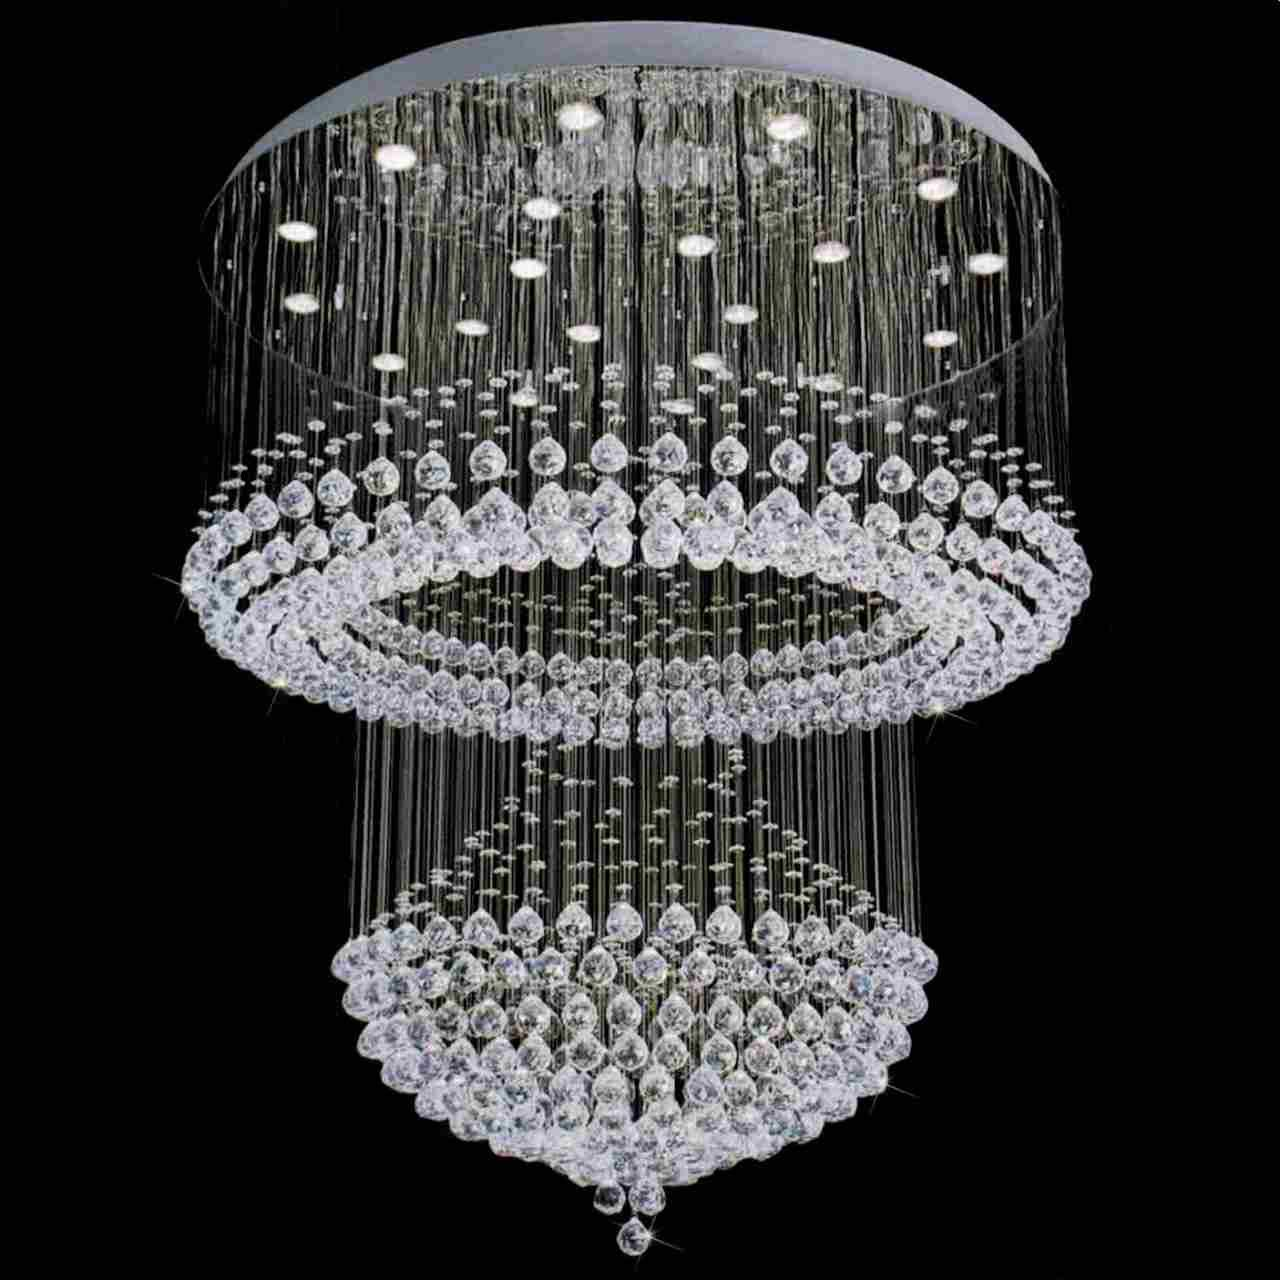 Small crystal chandeliereg crystals pinterest chandeliers attractive lighting for foyer modern foyer crystal chandelier mirror stainless steel chandeliers inspiration arubaitofo Gallery